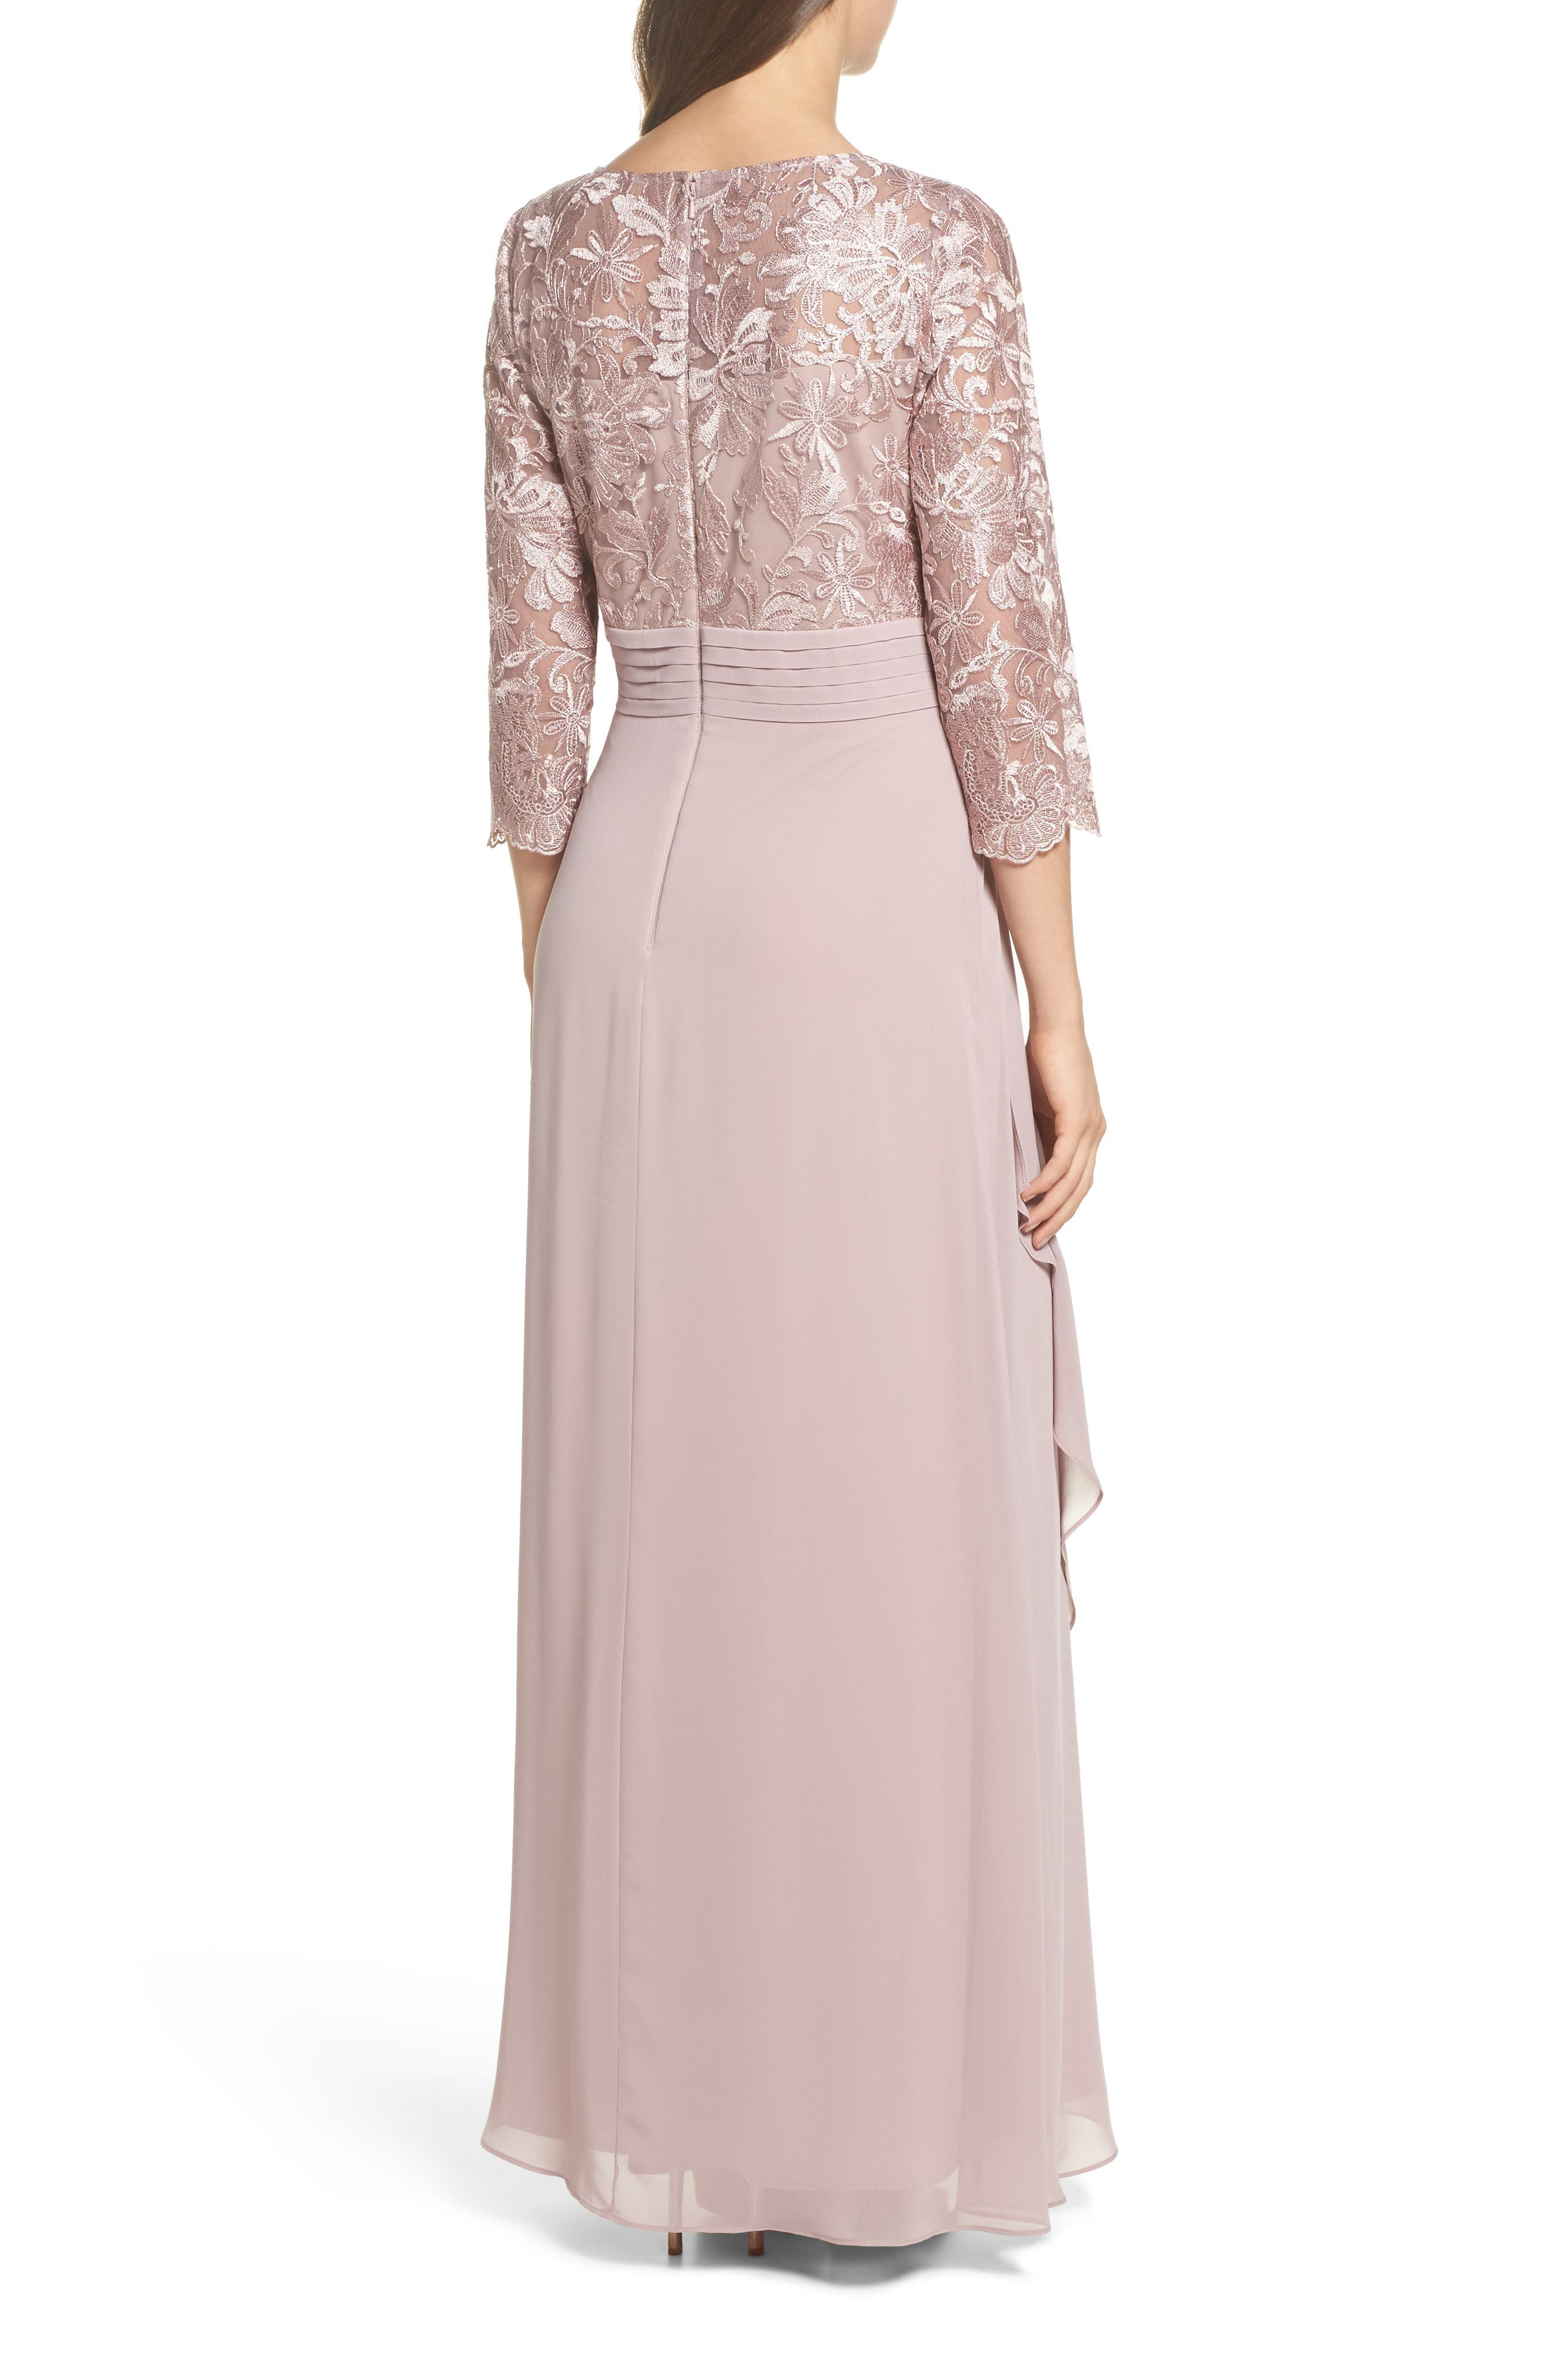 ALEX EVENINGS, Embroidered A-Line Gown, Alternate thumbnail 2, color, 695